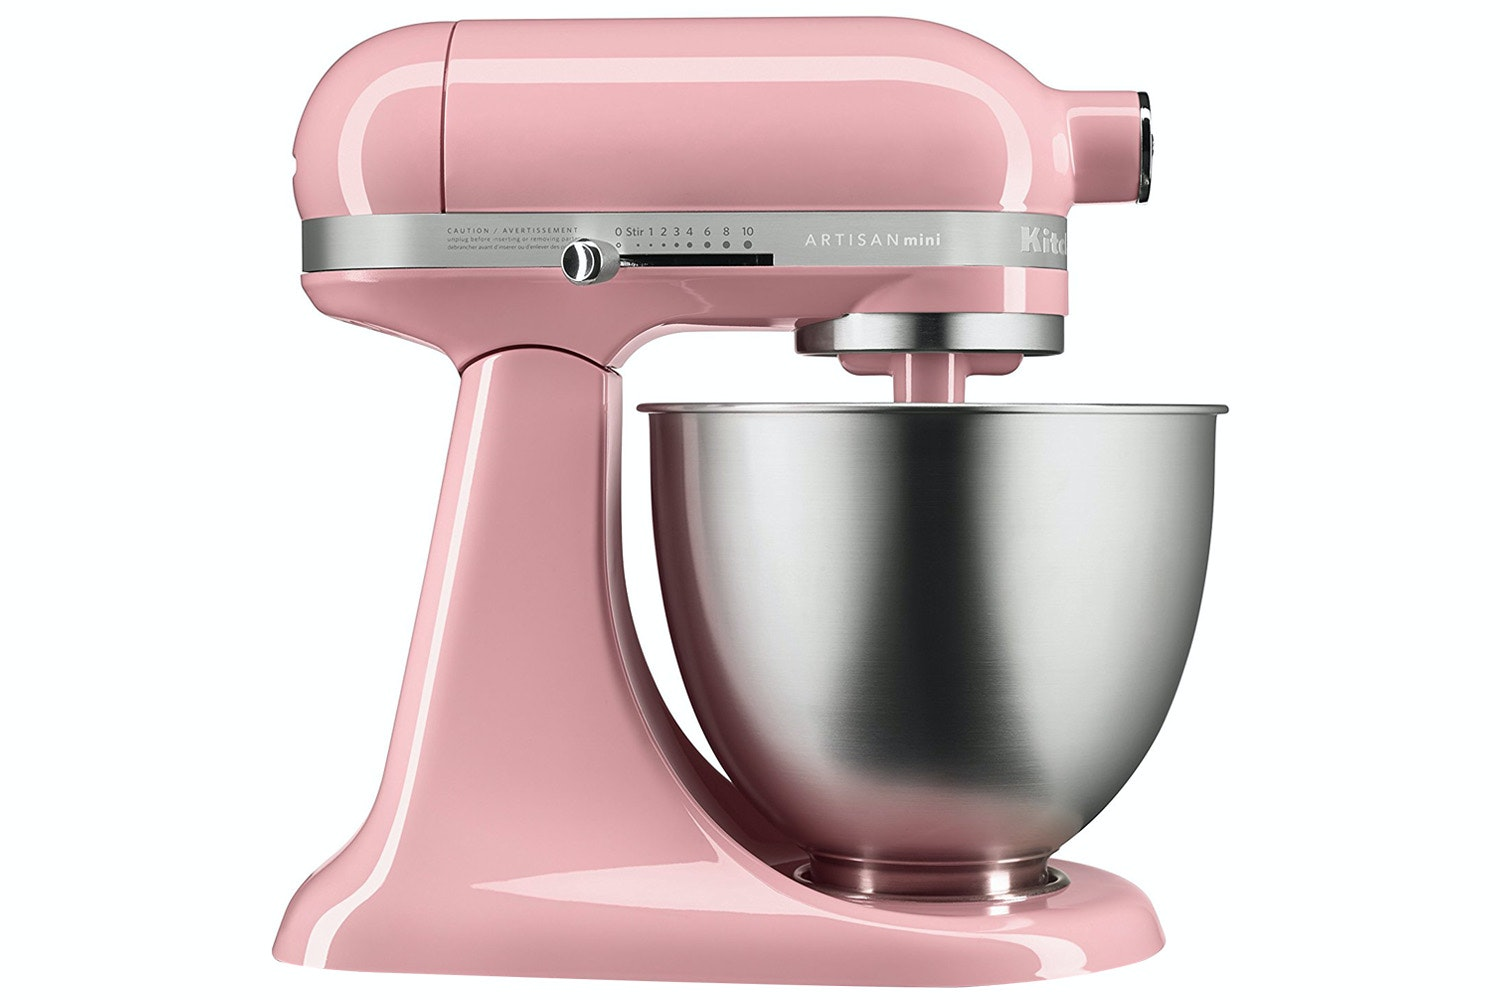 KitchenAid Mini 3.3L Stand Mixer | 5KSM3311XBGU